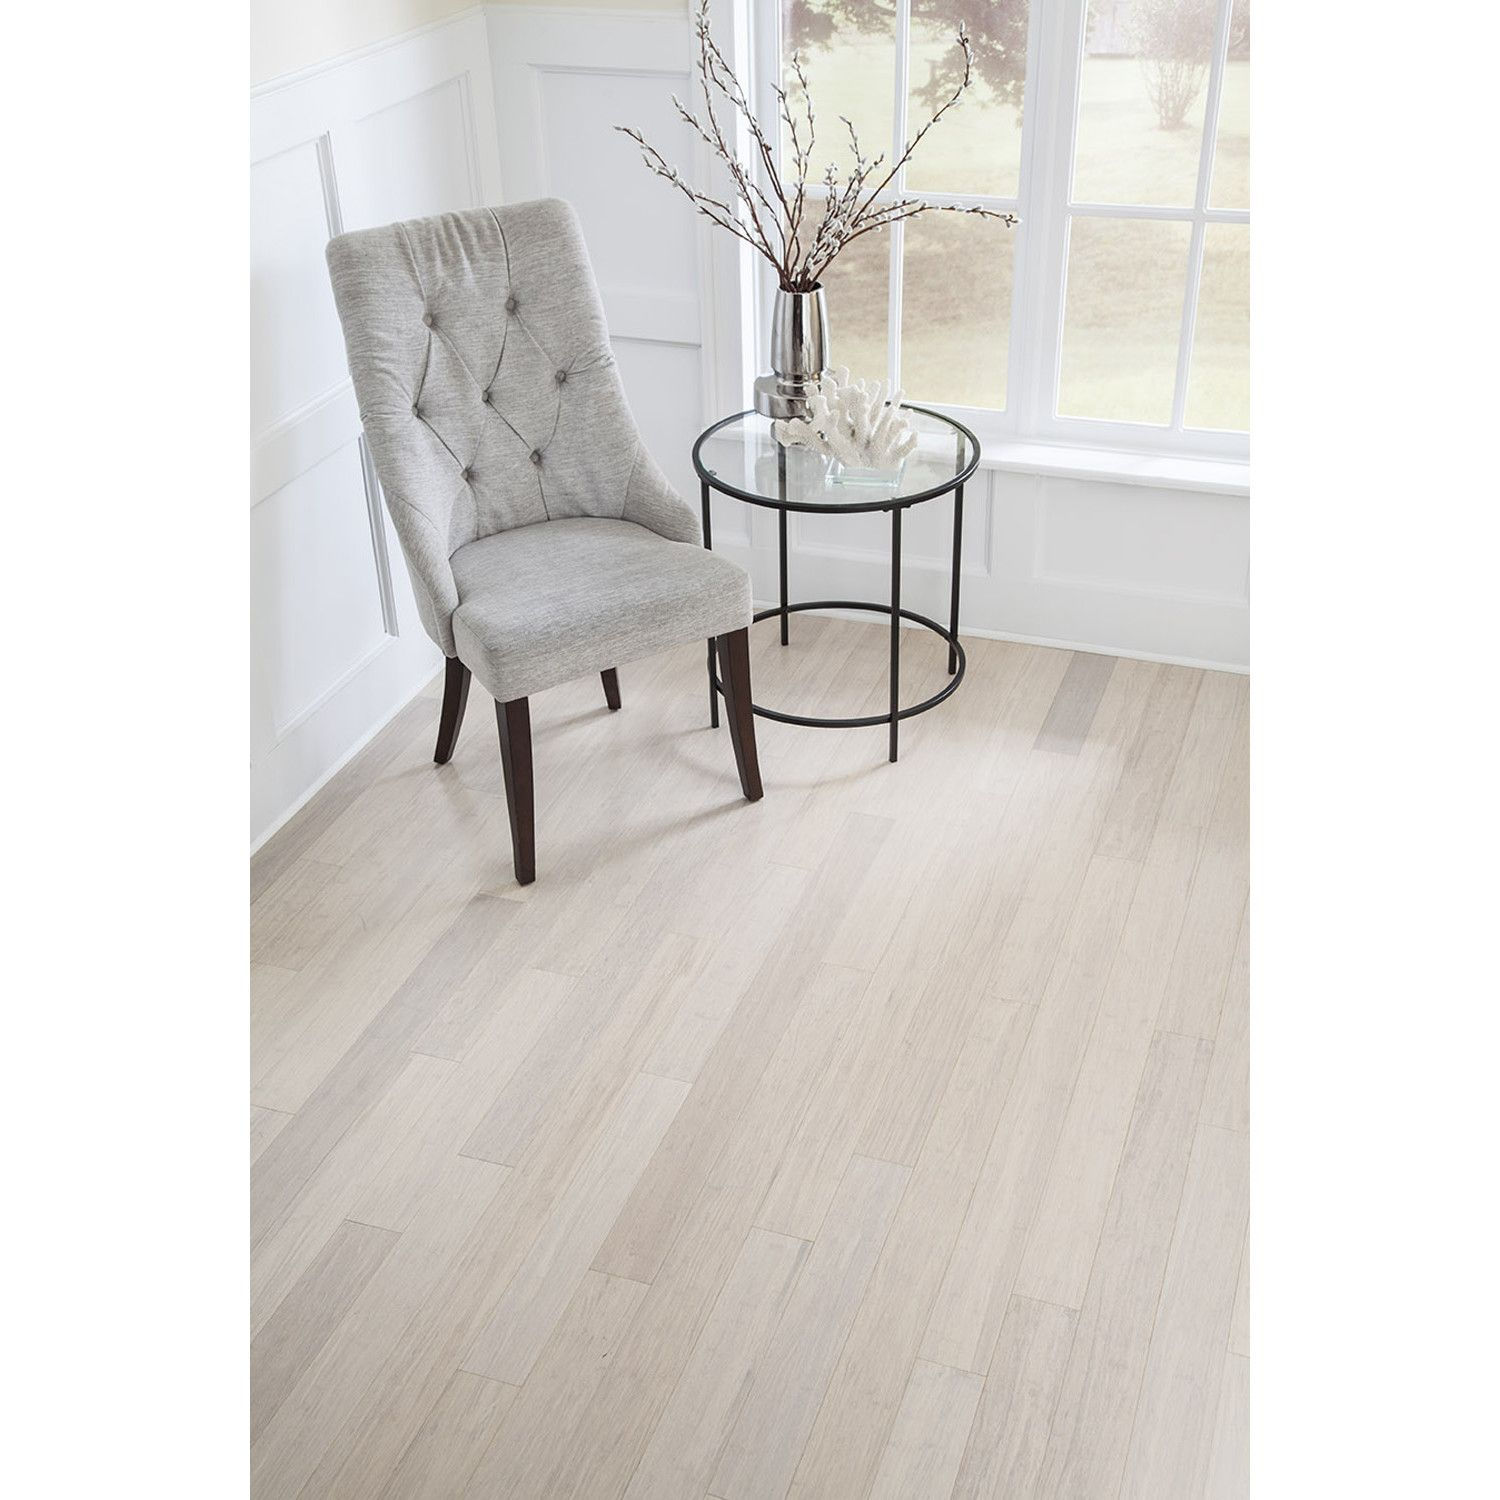 white bamboo wide plank floors lofts - Google Search | home ...